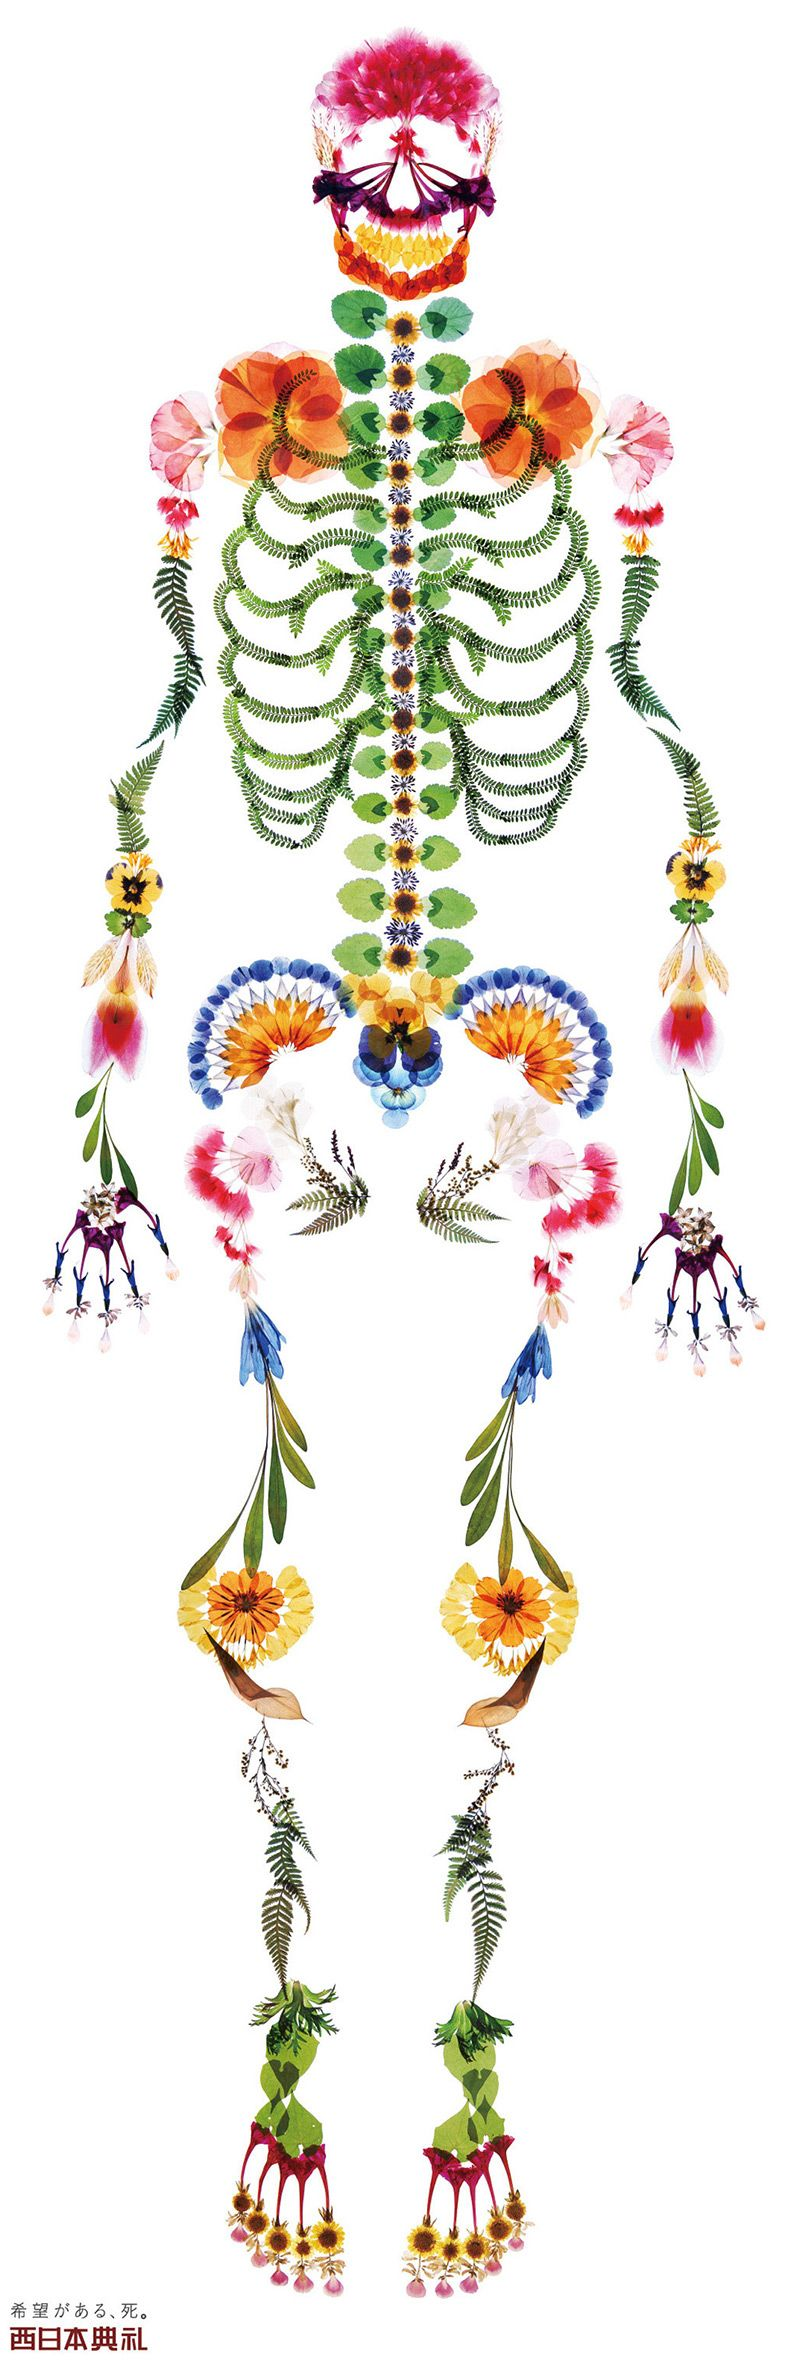 A pressed flower skeleton bucks the trend in advertising for funeral services in Japan by celebrating life.